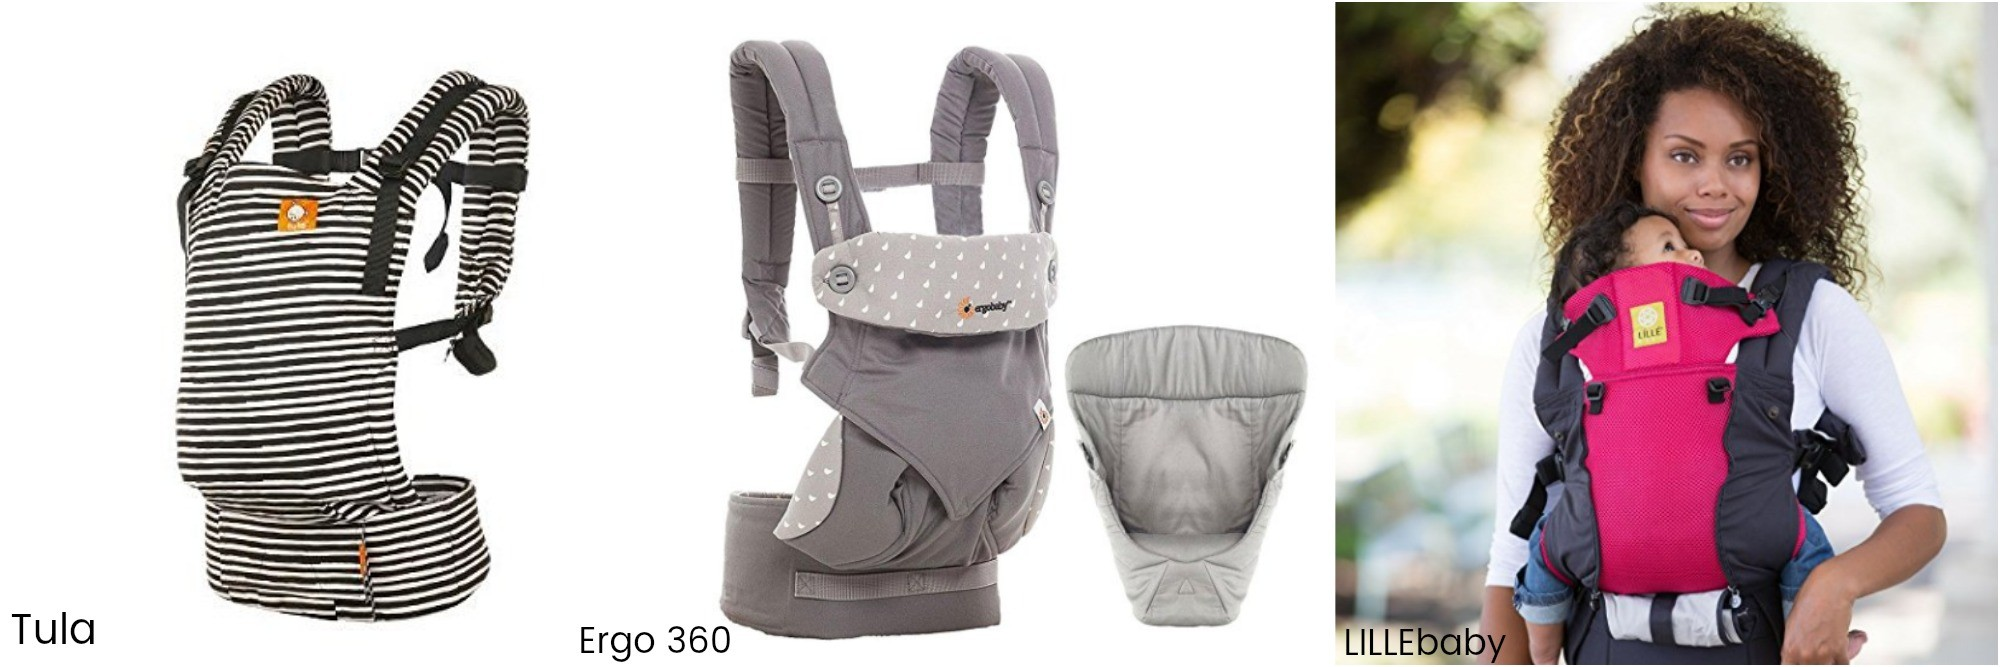 Baby Carrier Options